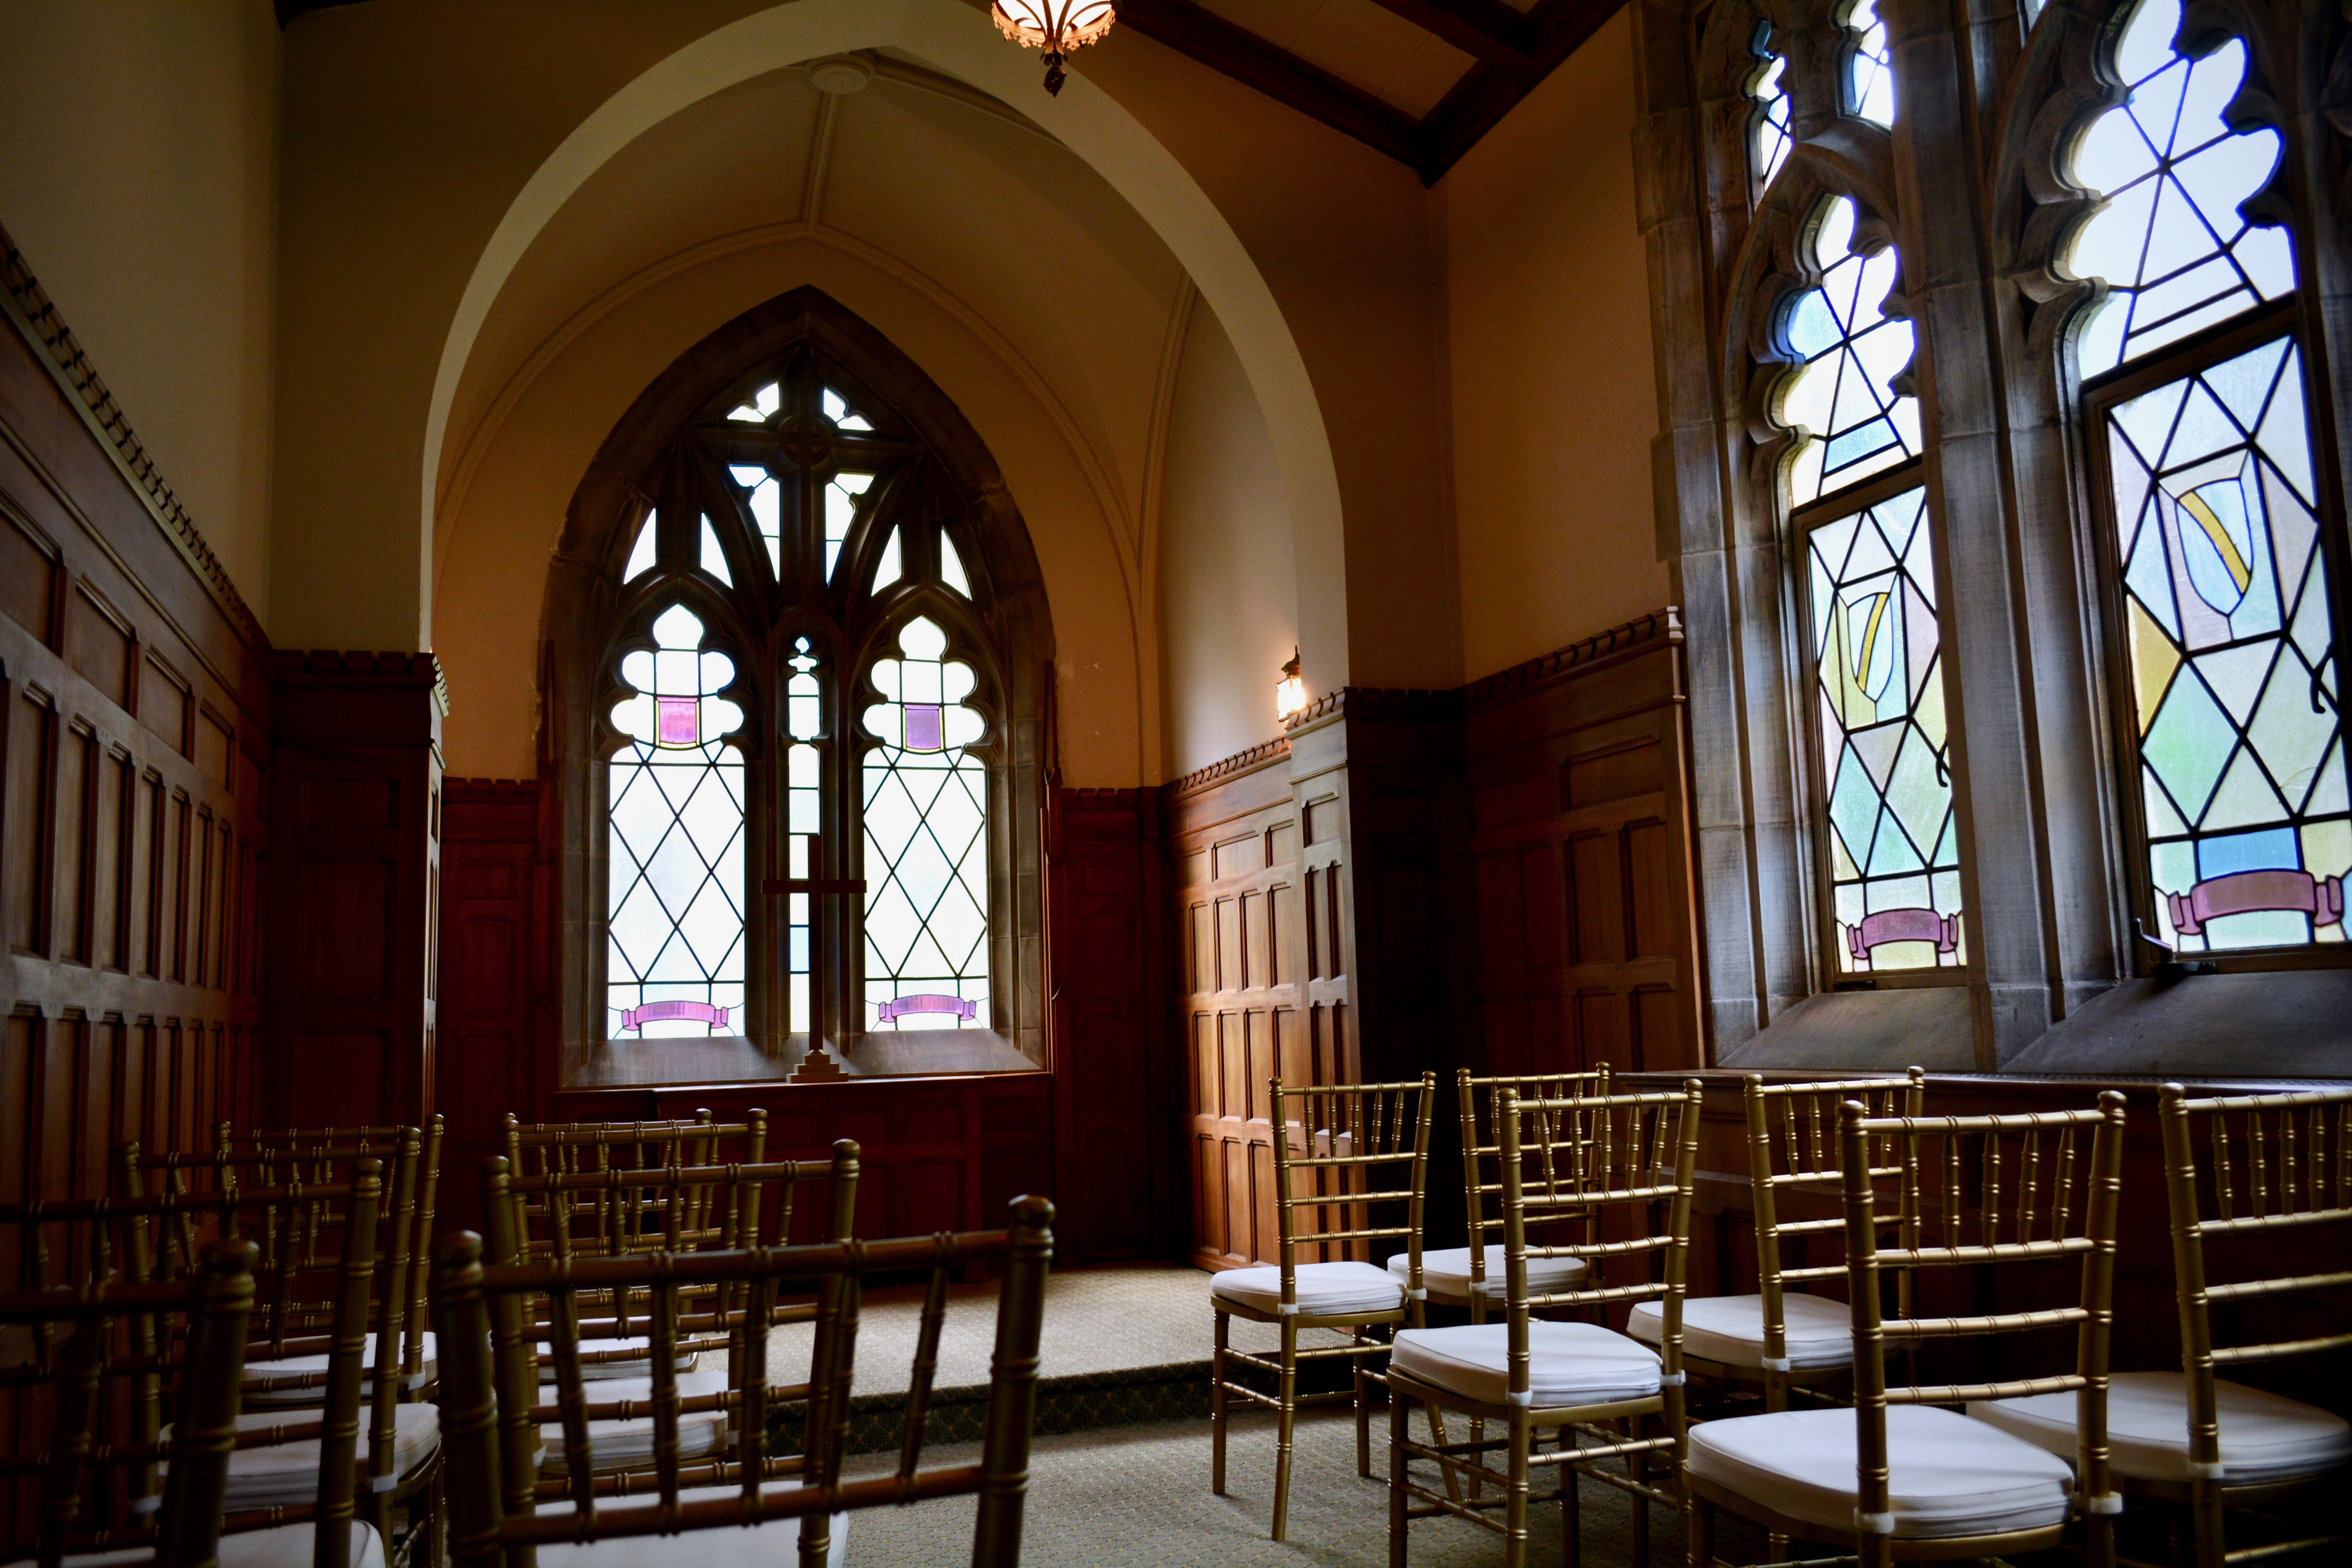 small chapel with stained glass windows and rows of chairs